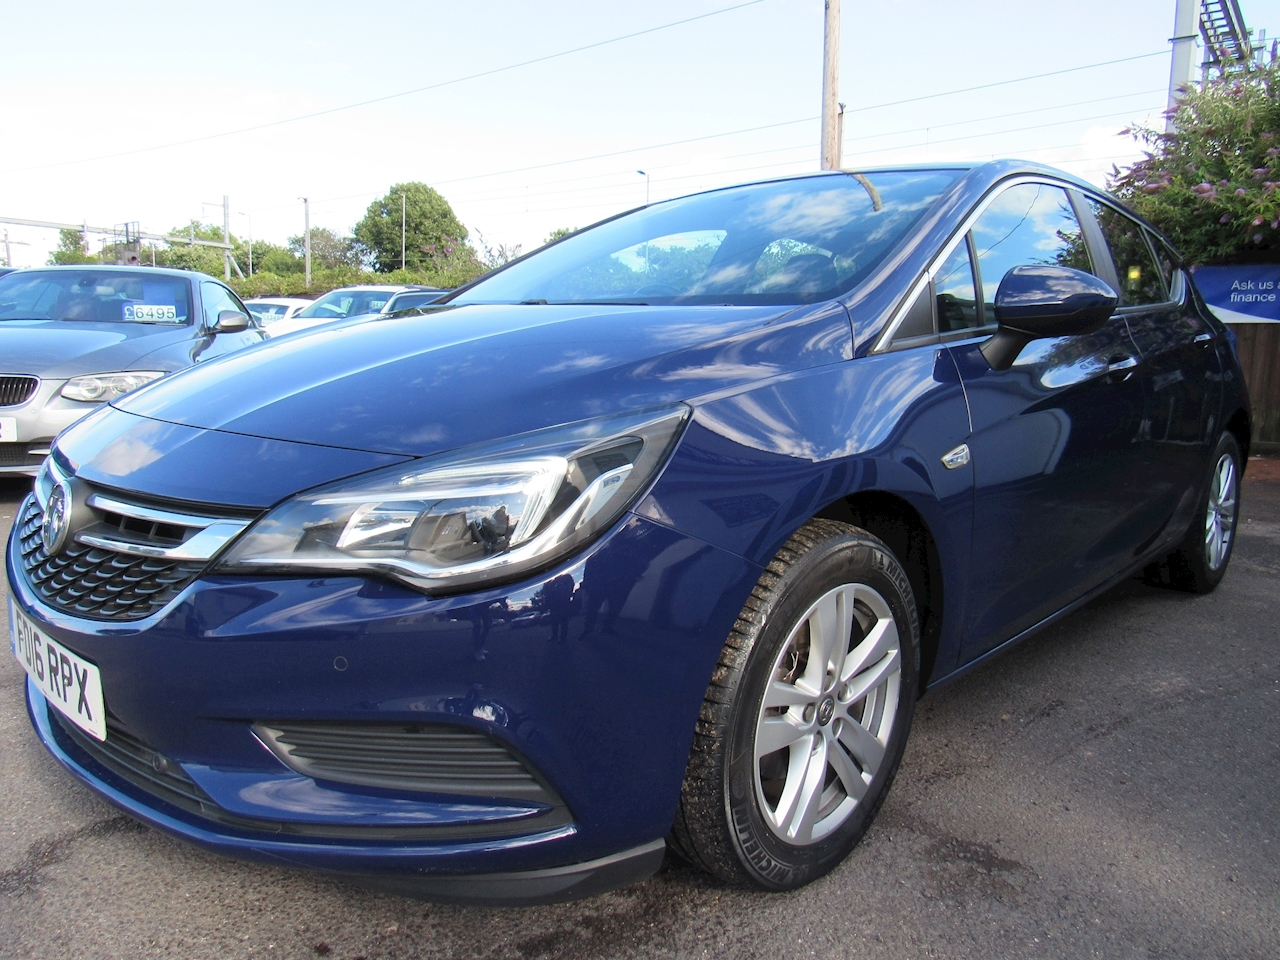 Vauxhall Astra Tech Line Hatchback 1.6 Manual Diesel